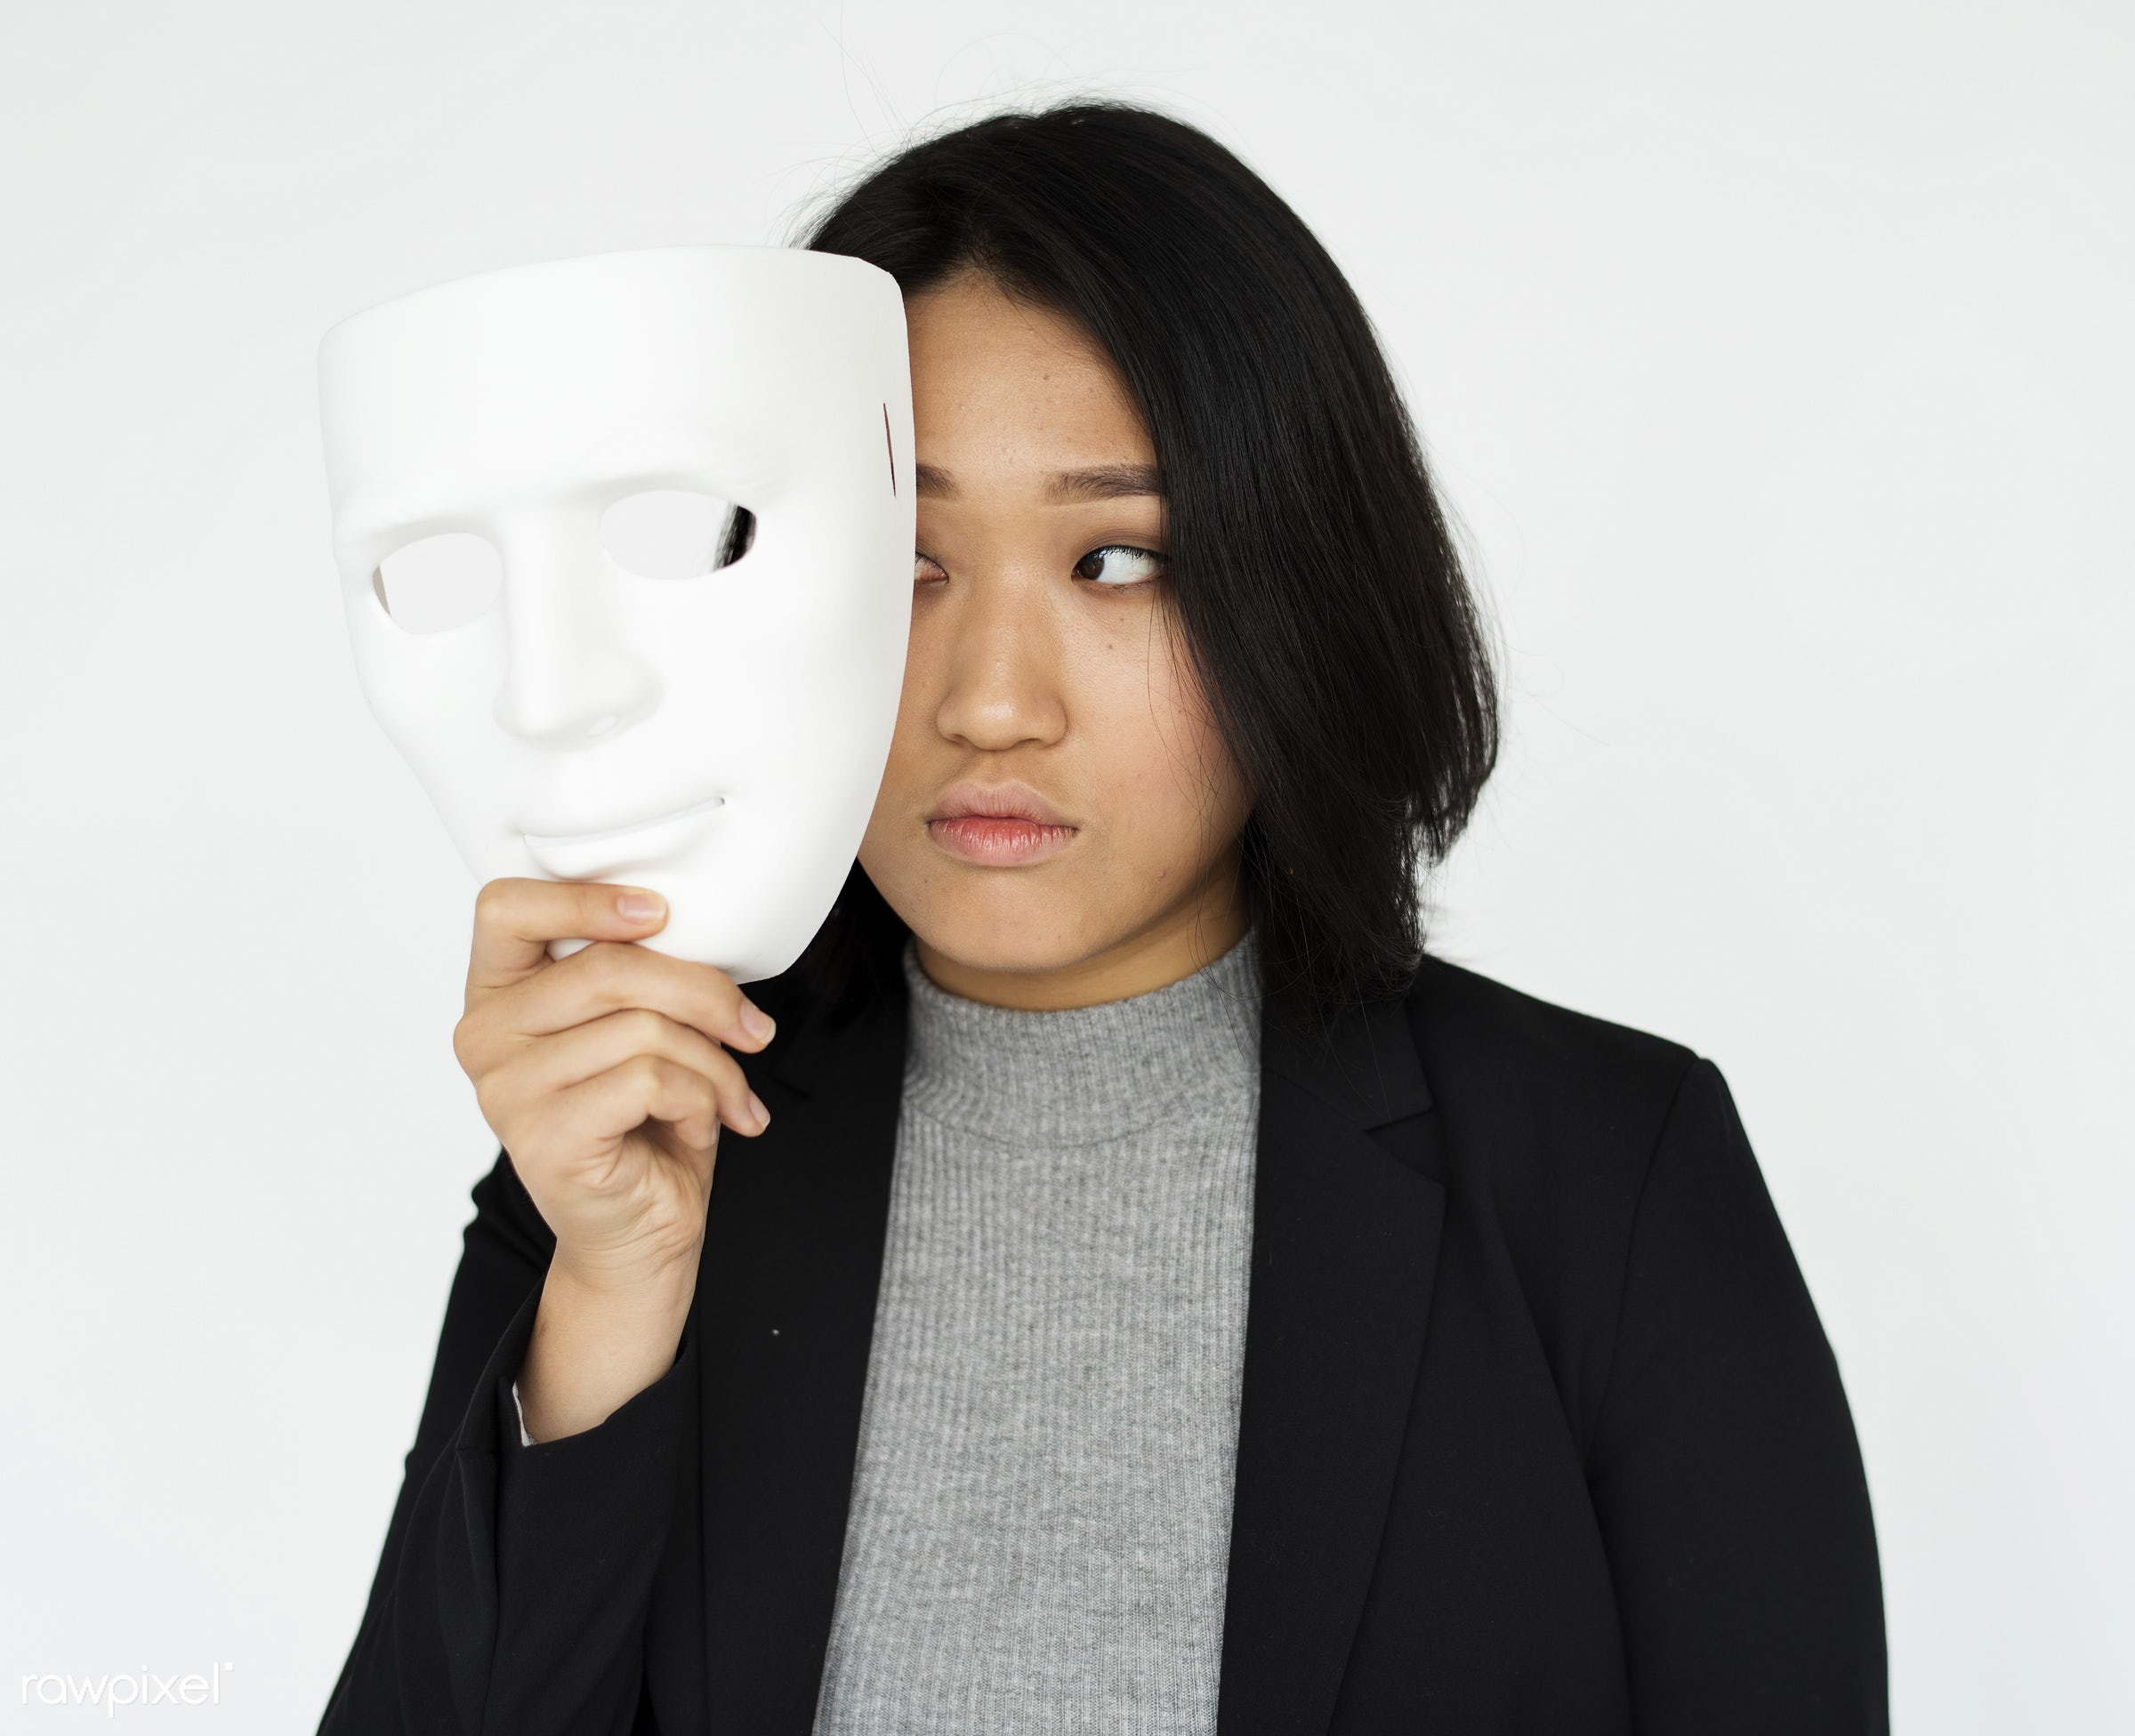 expression, studio, face, model, person, isolated on white, mask, imagination, personality, people, business, asian, cover,...